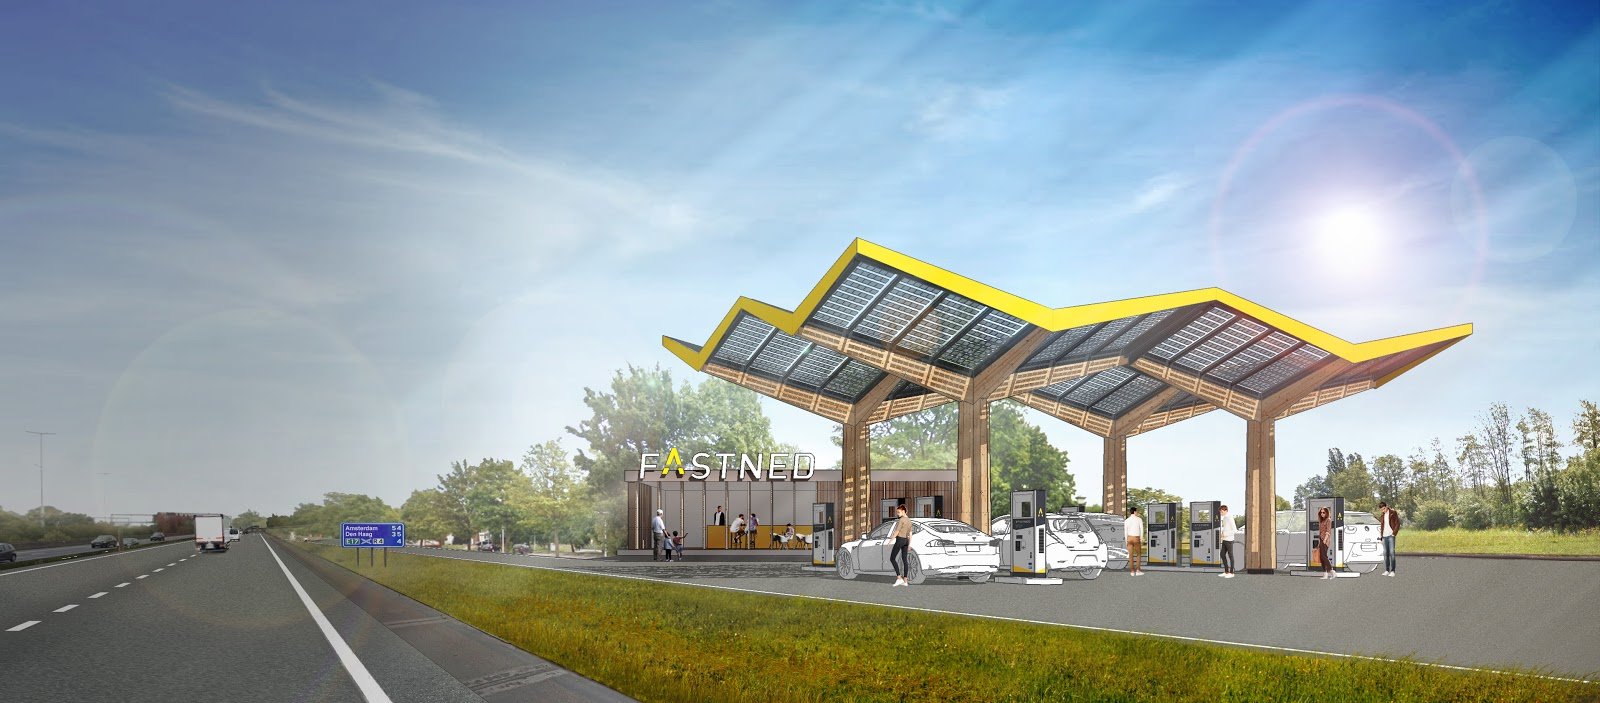 301569 render fastned station 2ba3fe original 1548243131